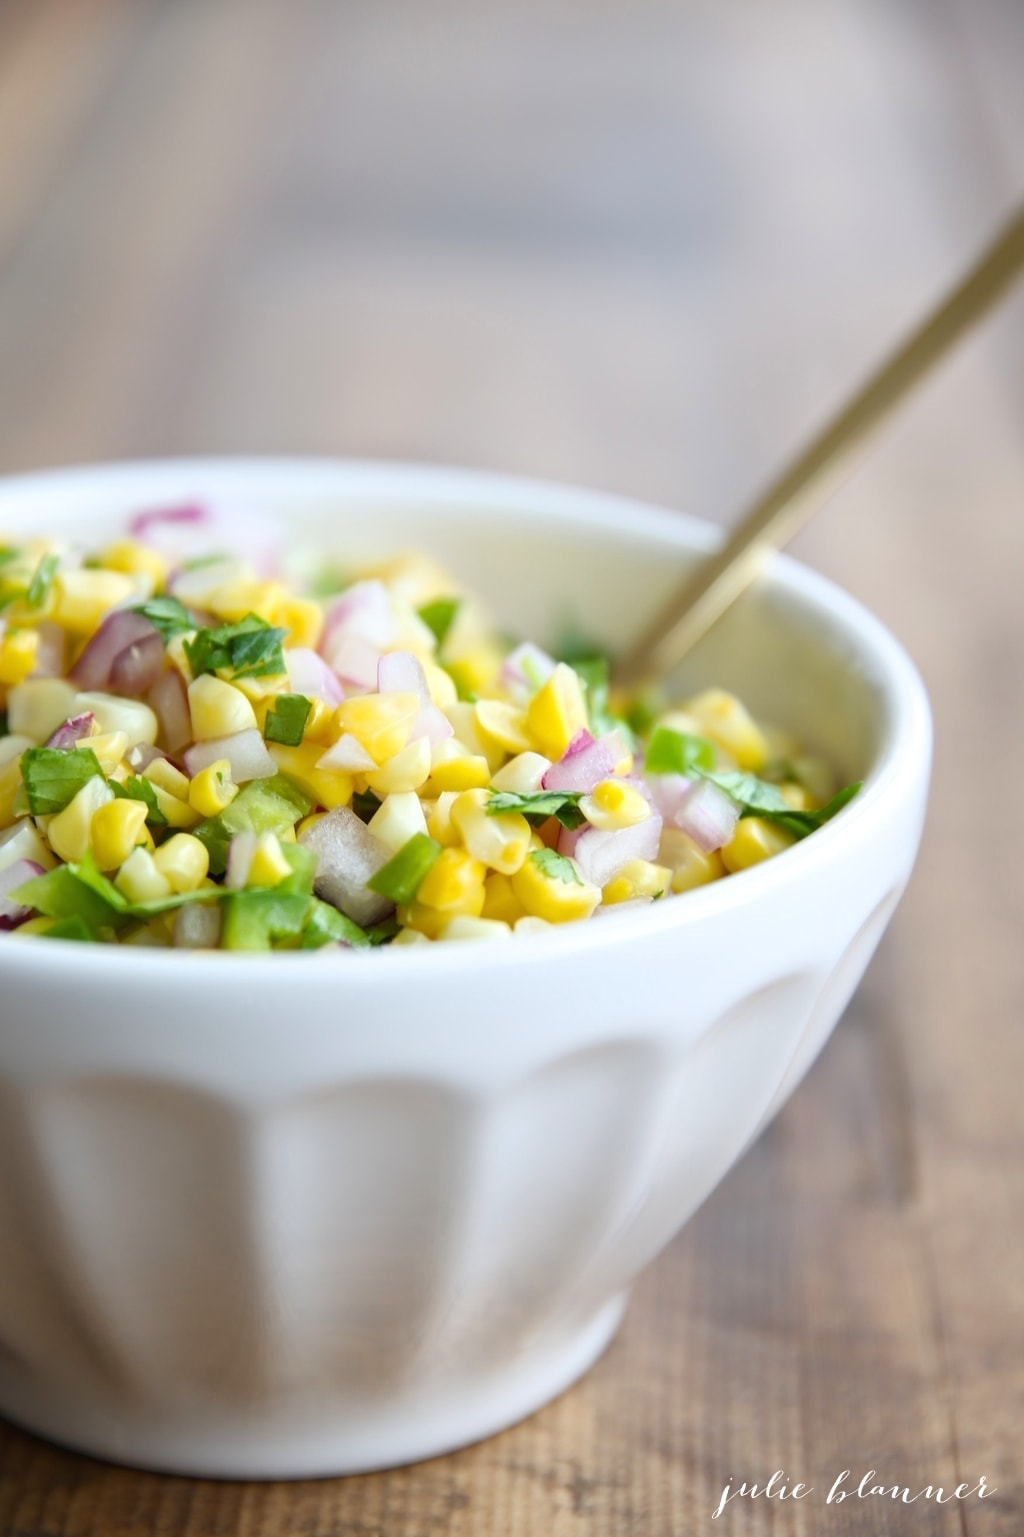 This chipotle corn salsa recipe is my favorite for hosting taco night - it goes well with chicken, pork or steak tacos & salads!